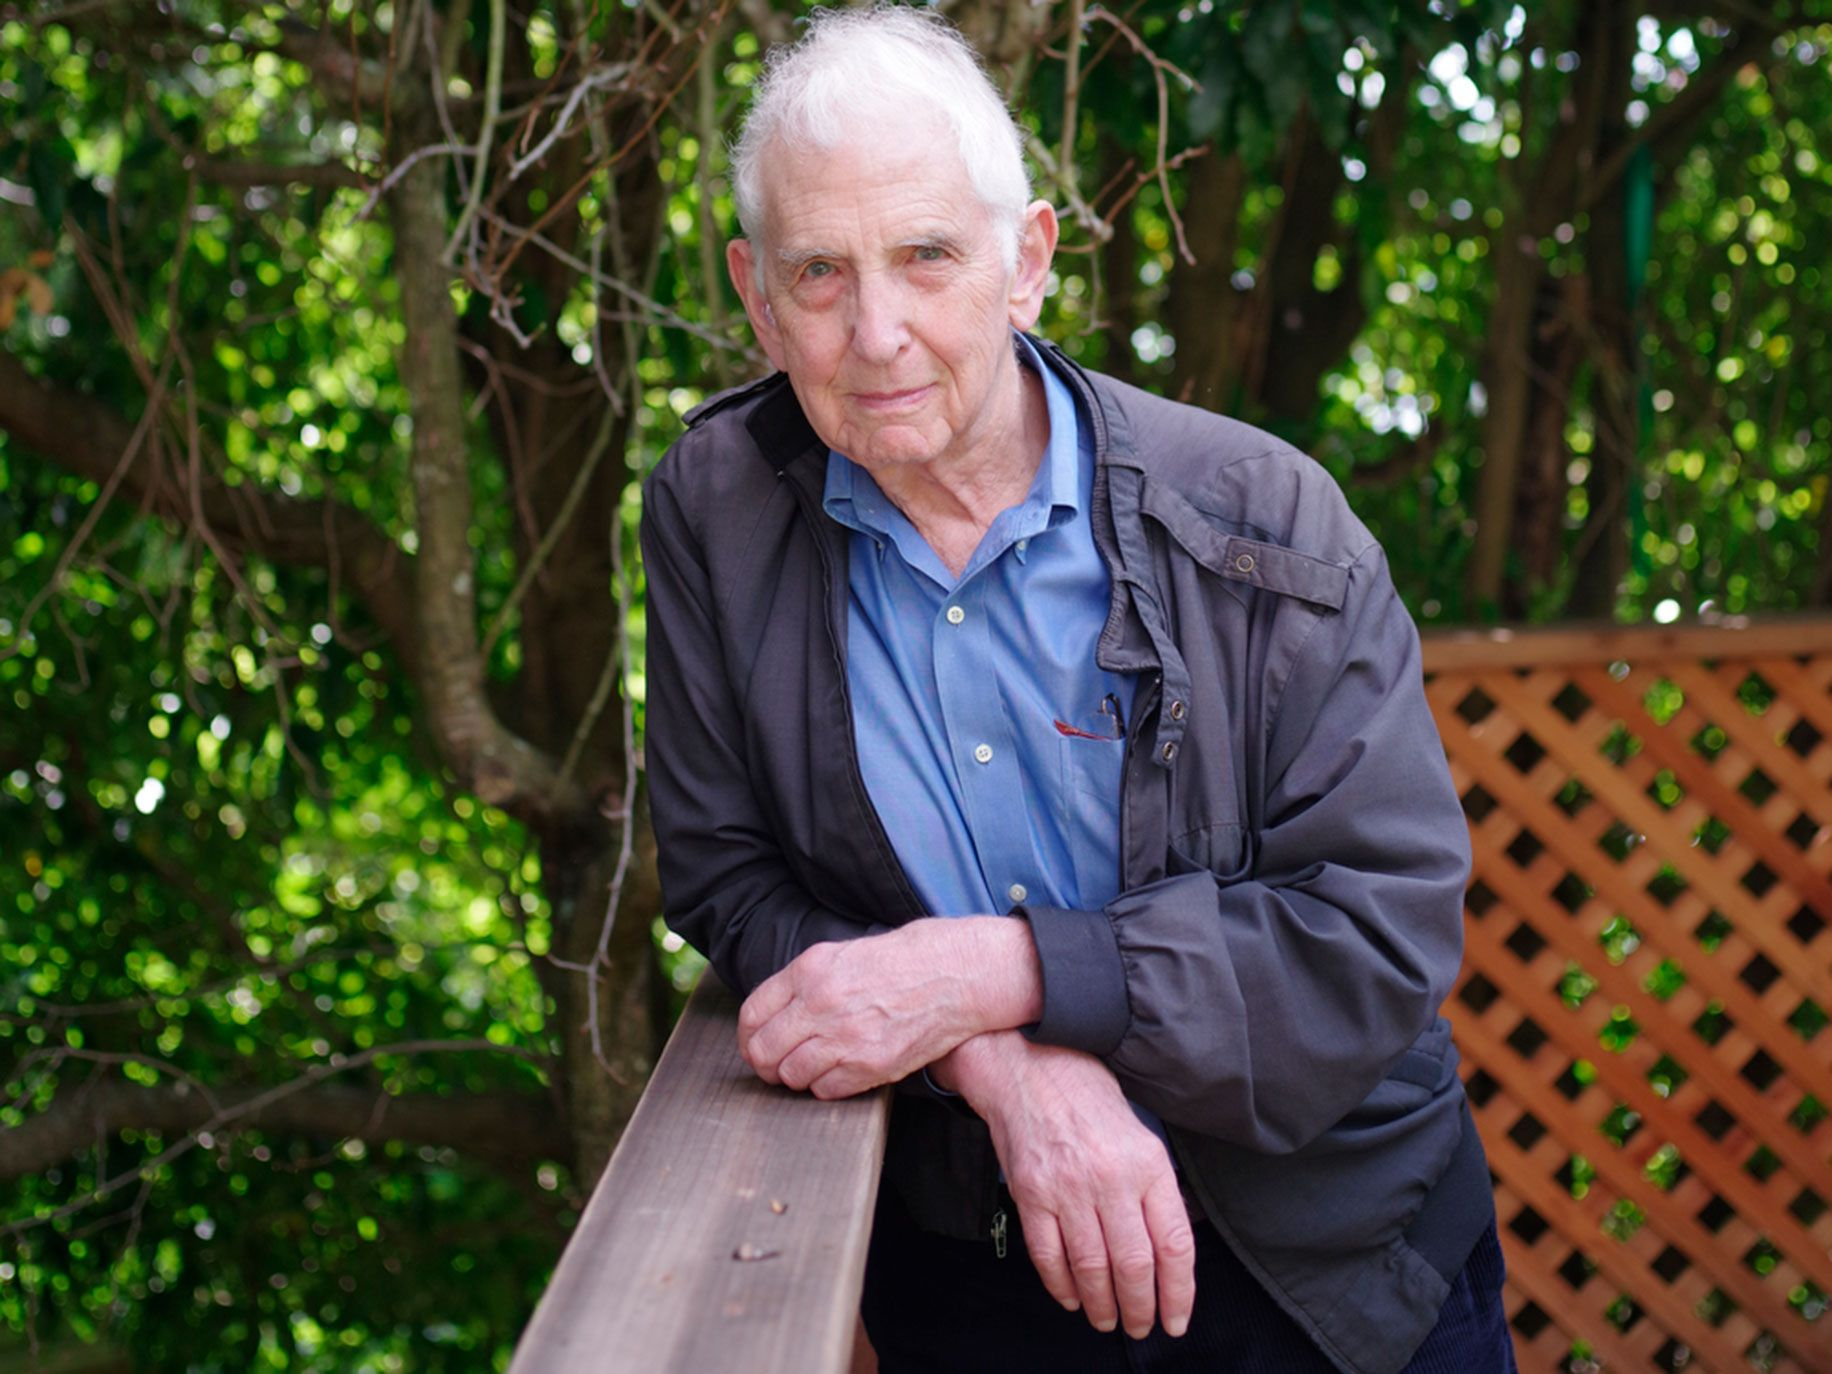 Daniel Ellsberg, who in 1971 provided the Pentagon Papers to members of the media, credits Harris's work as an inspiration in his decision to leak the documents.